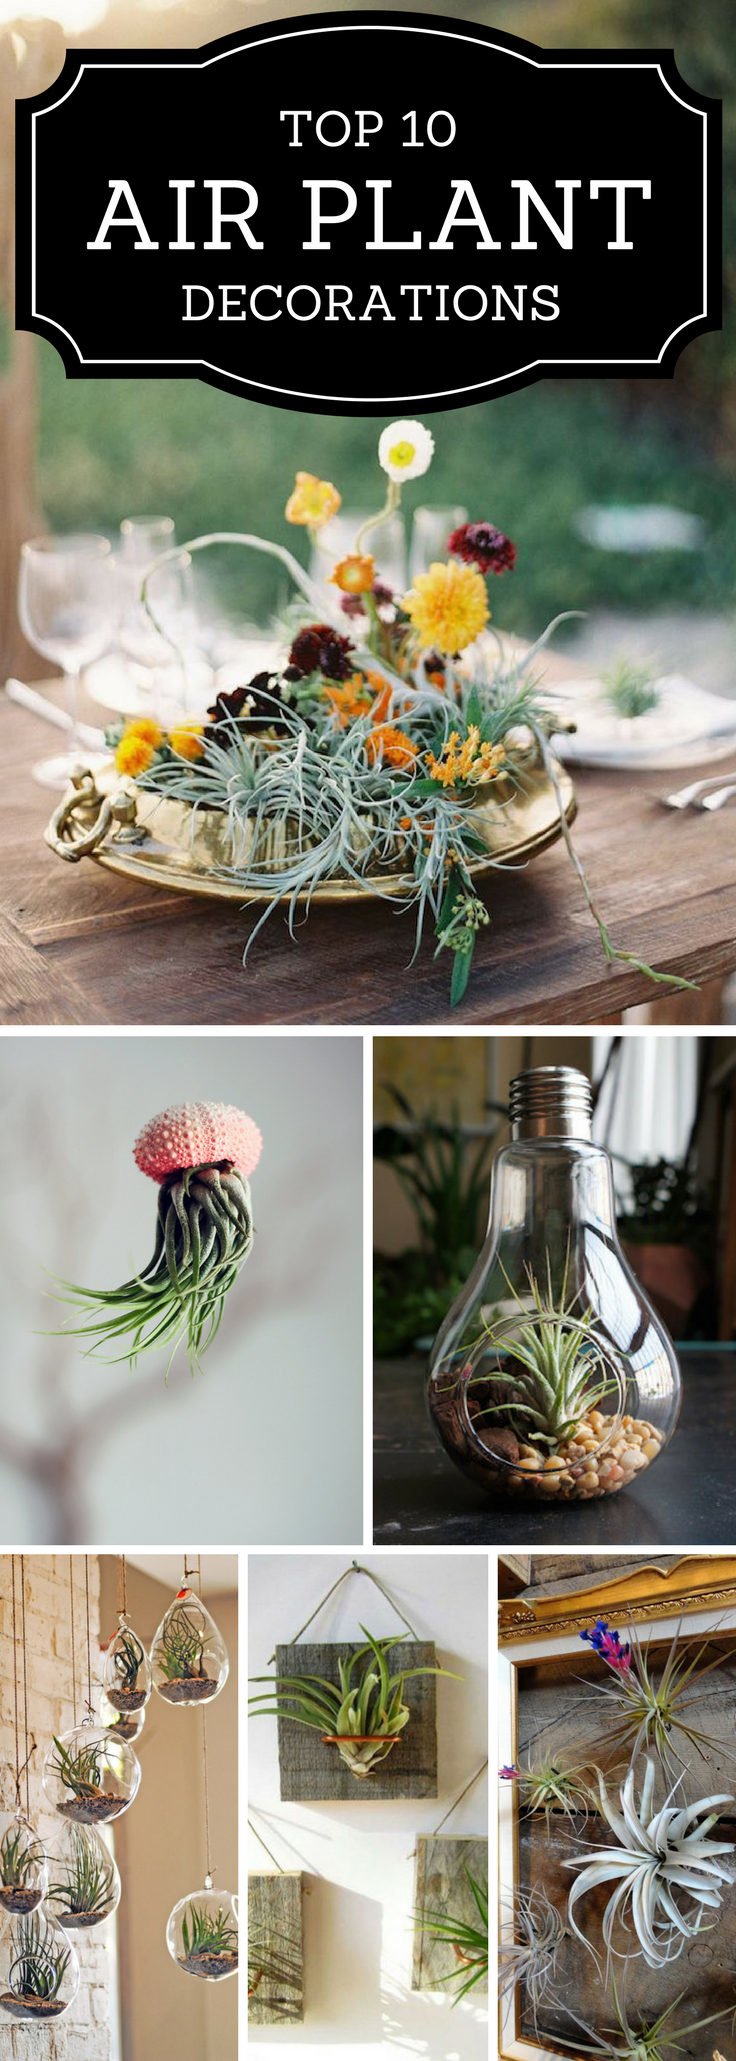 Top 10 Beautiful Air Plant Decorations